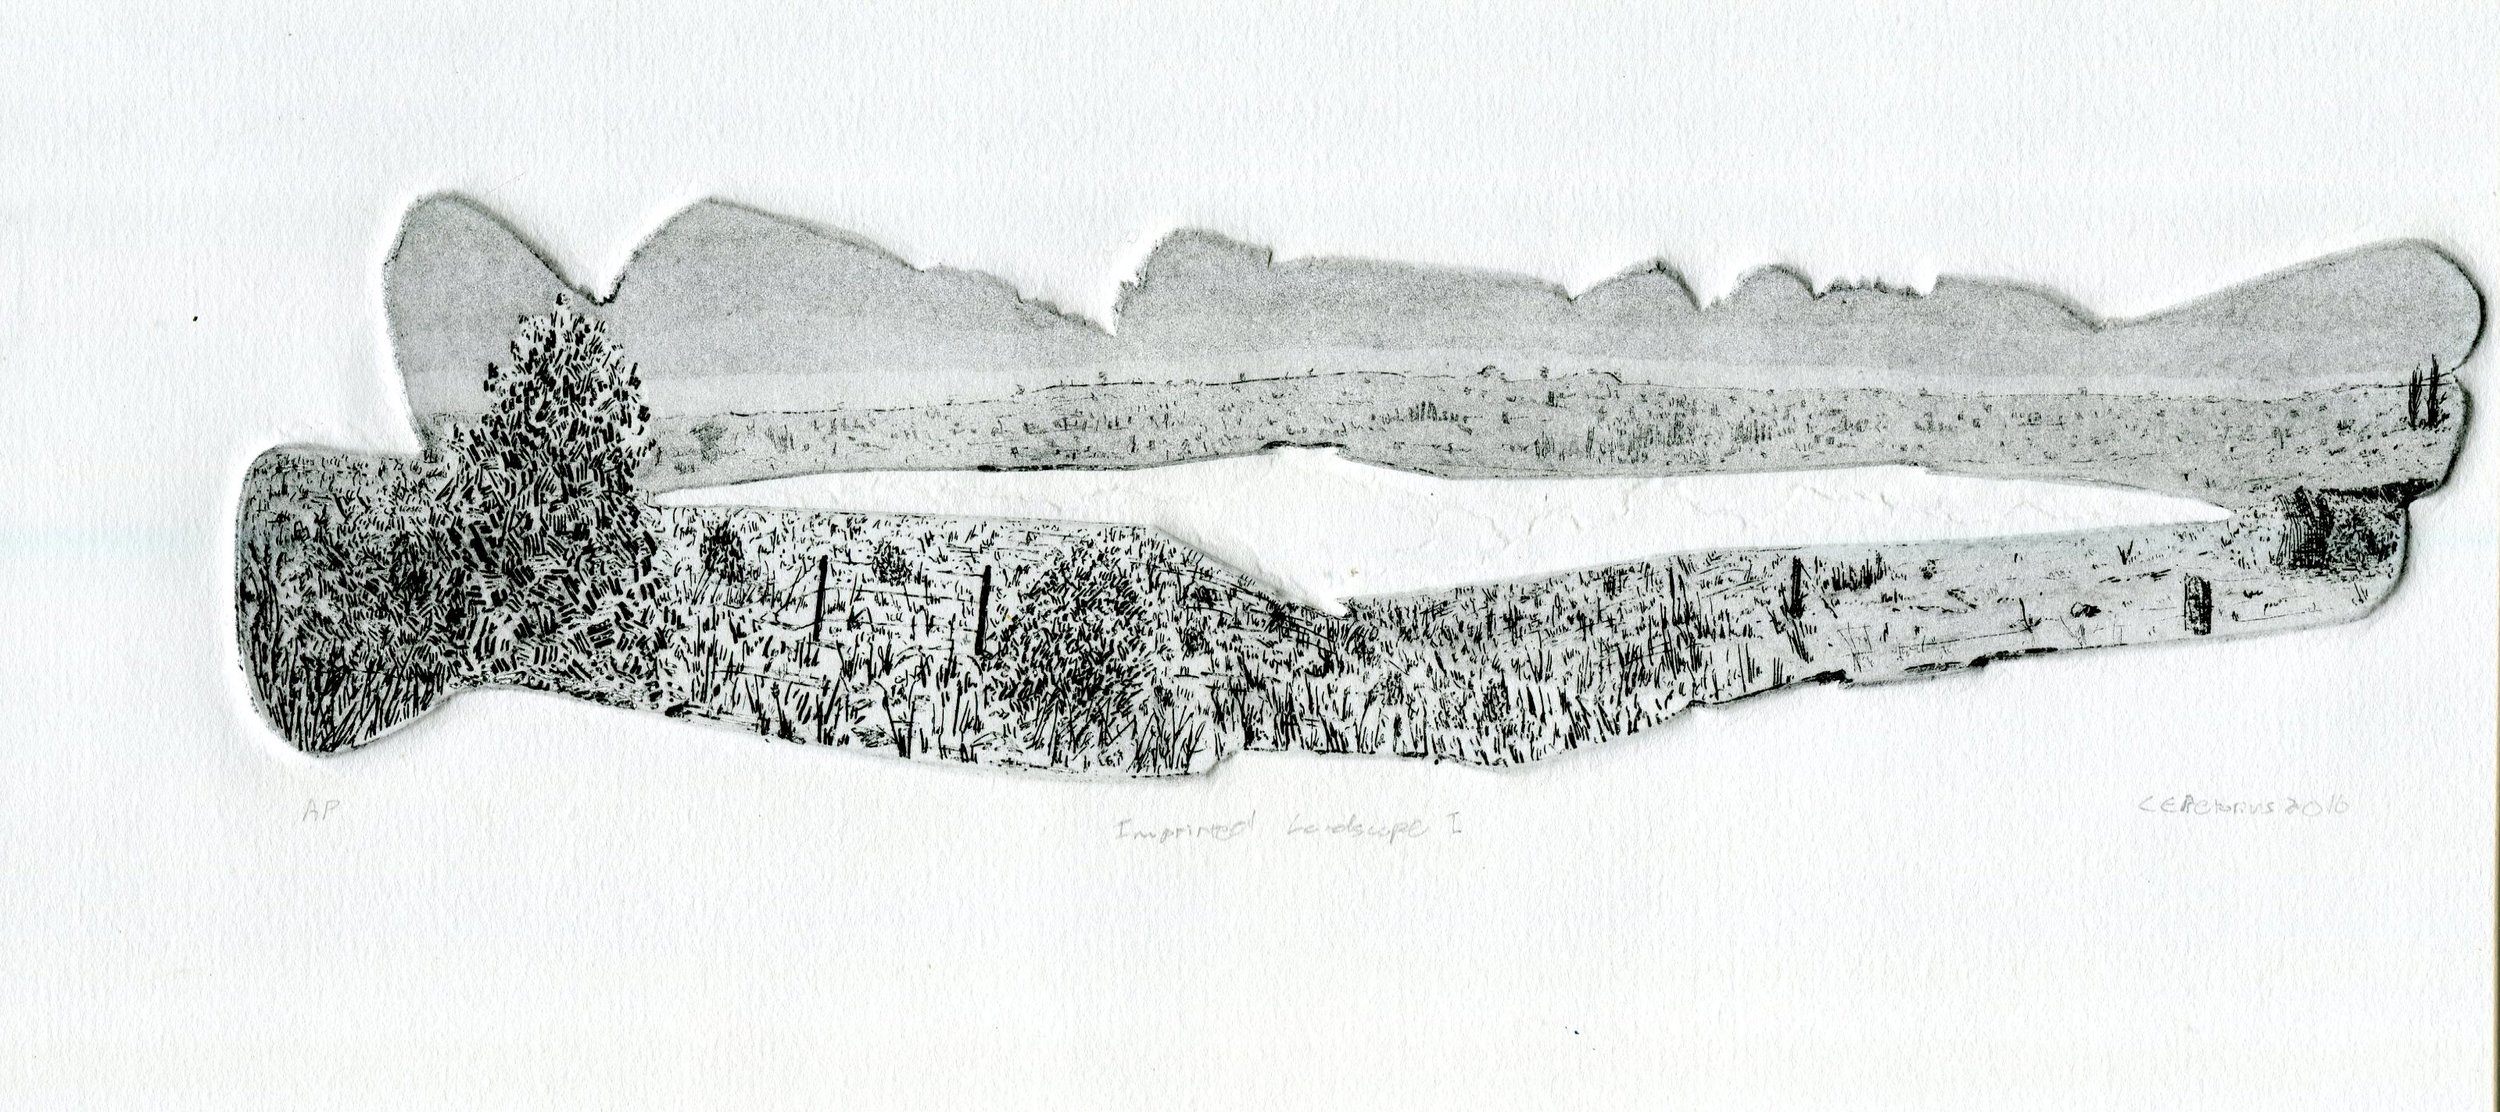 82A ELOFF PRETORIUS, IMPRINTED LANDSCAPE 1, ETCHING ON PAPER